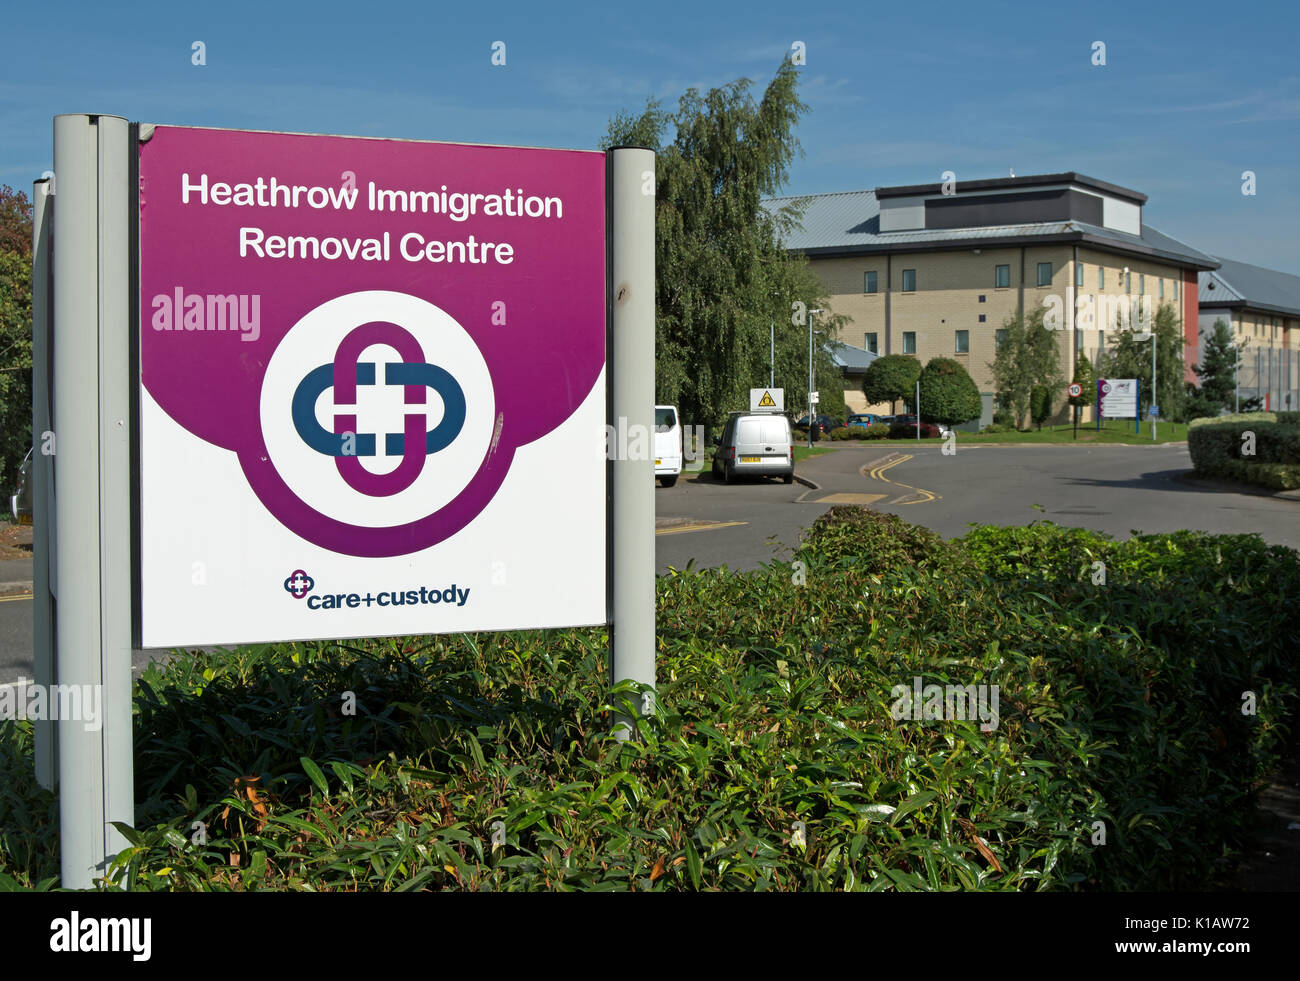 entrance sign for heathrow immigration removal centre, harmondsworth, london, england - Stock Image